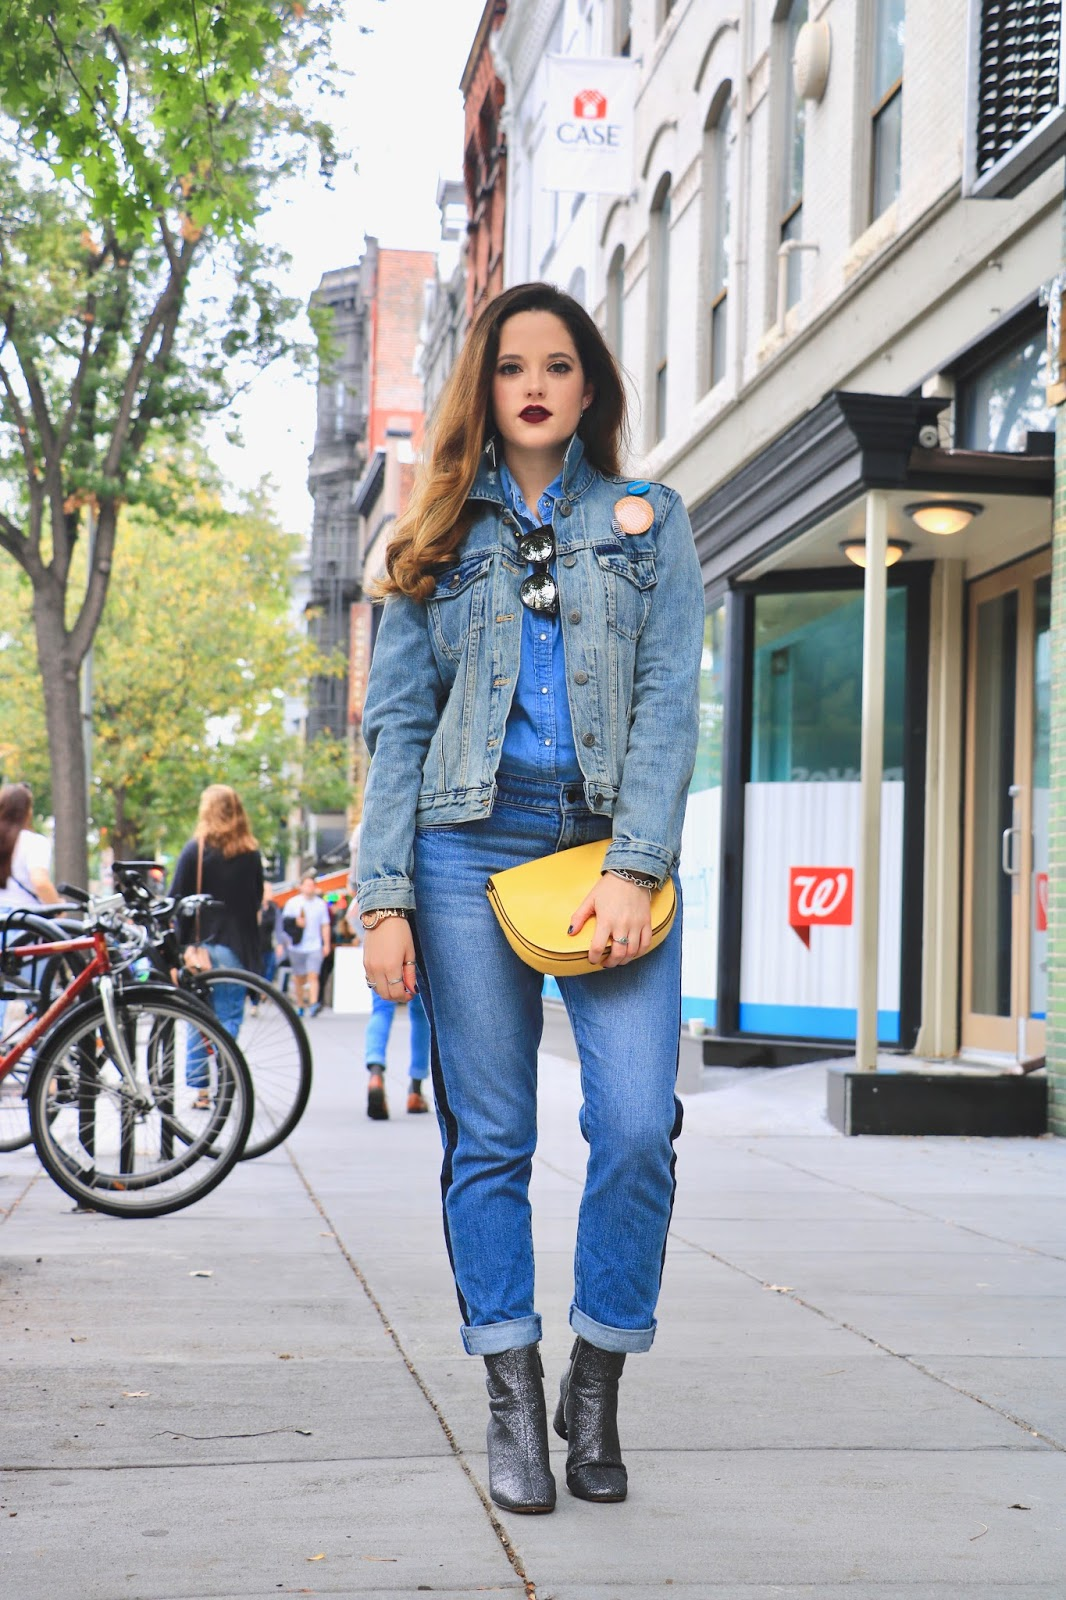 Nyc fashion blogger Kathleen Harper's fall outfit ideas